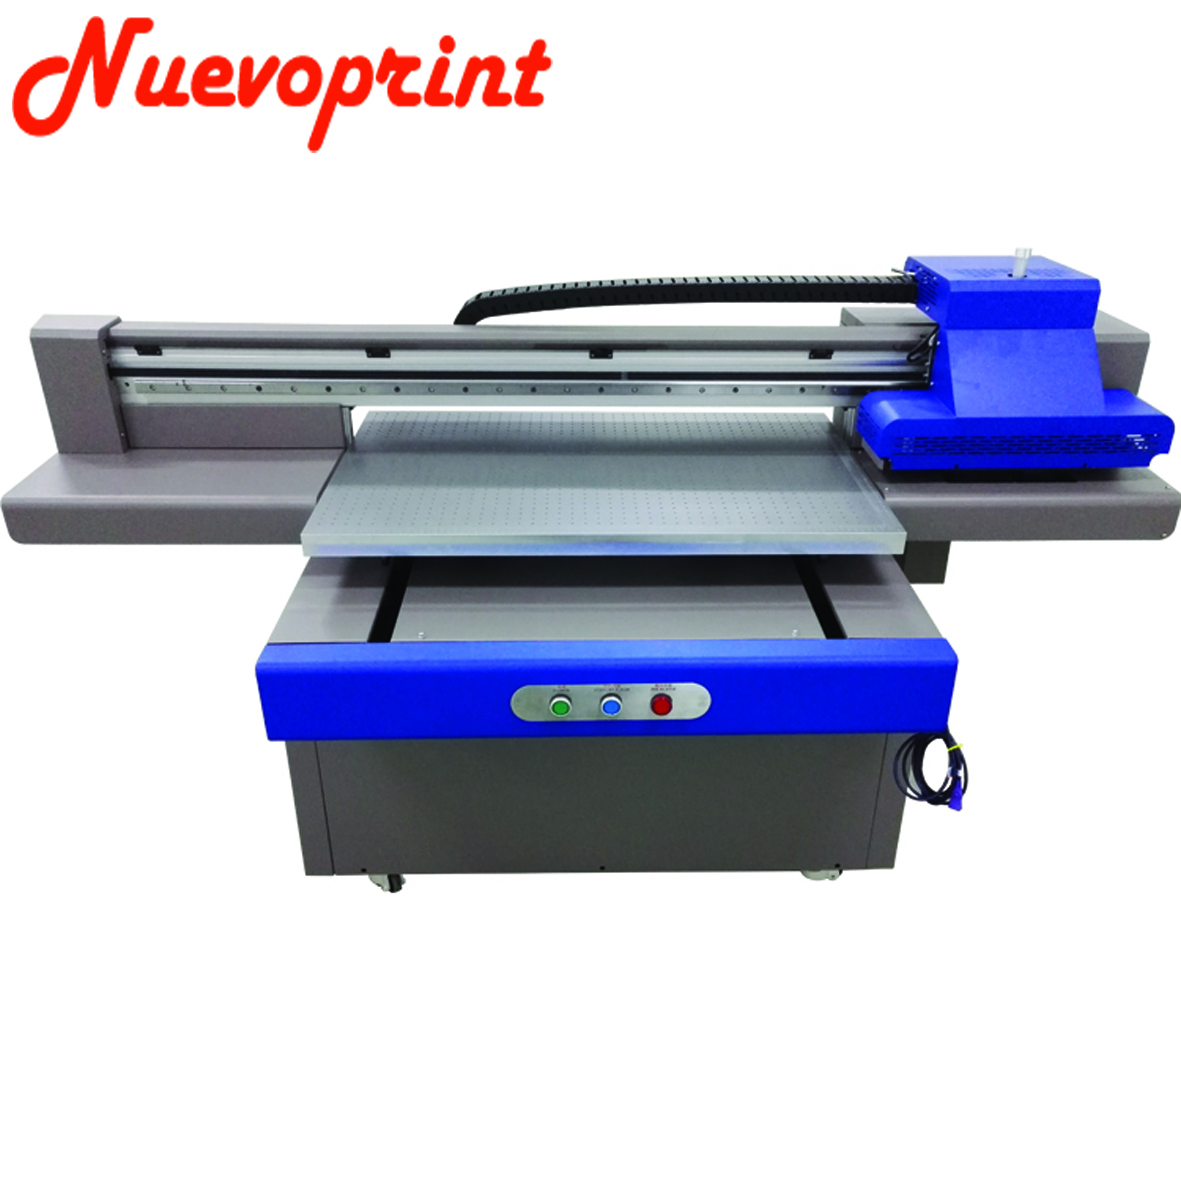 2018 best uv flatbed printer ink printing applications machine suppliers on glass for sale NVP6090T